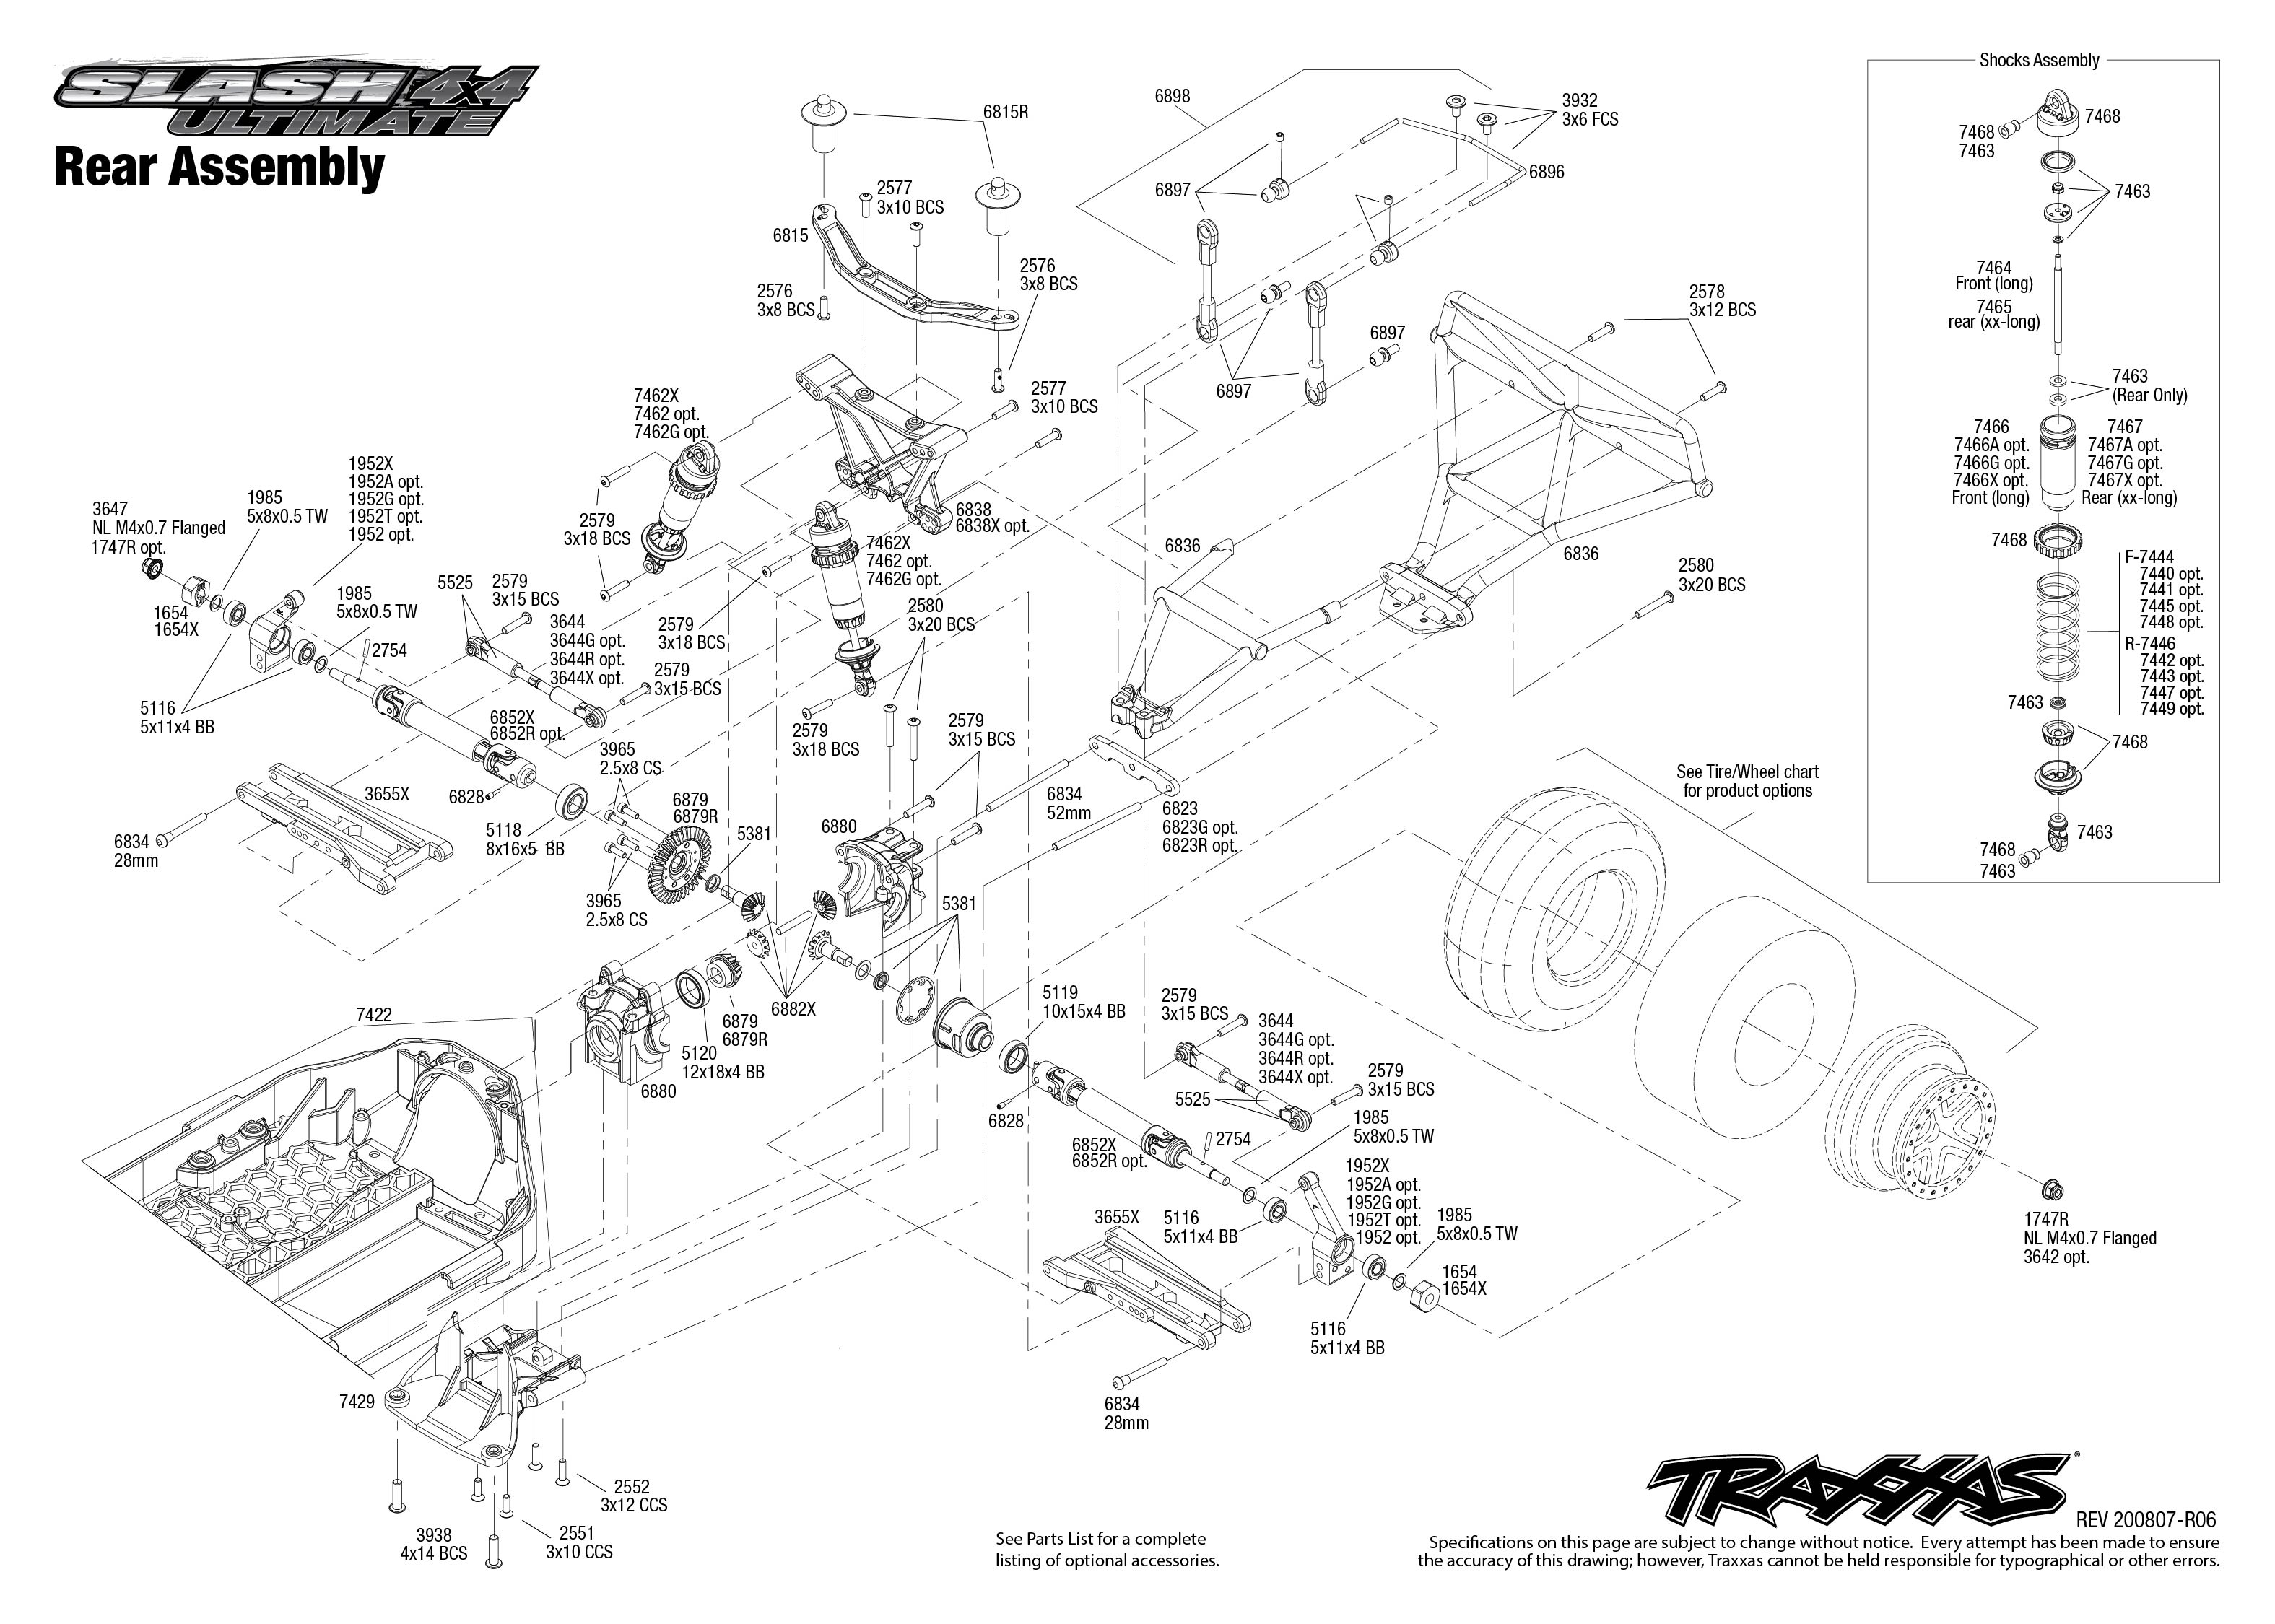 Slash 4X4 Ultimate (68077-24) Rear Assembly Exploded View